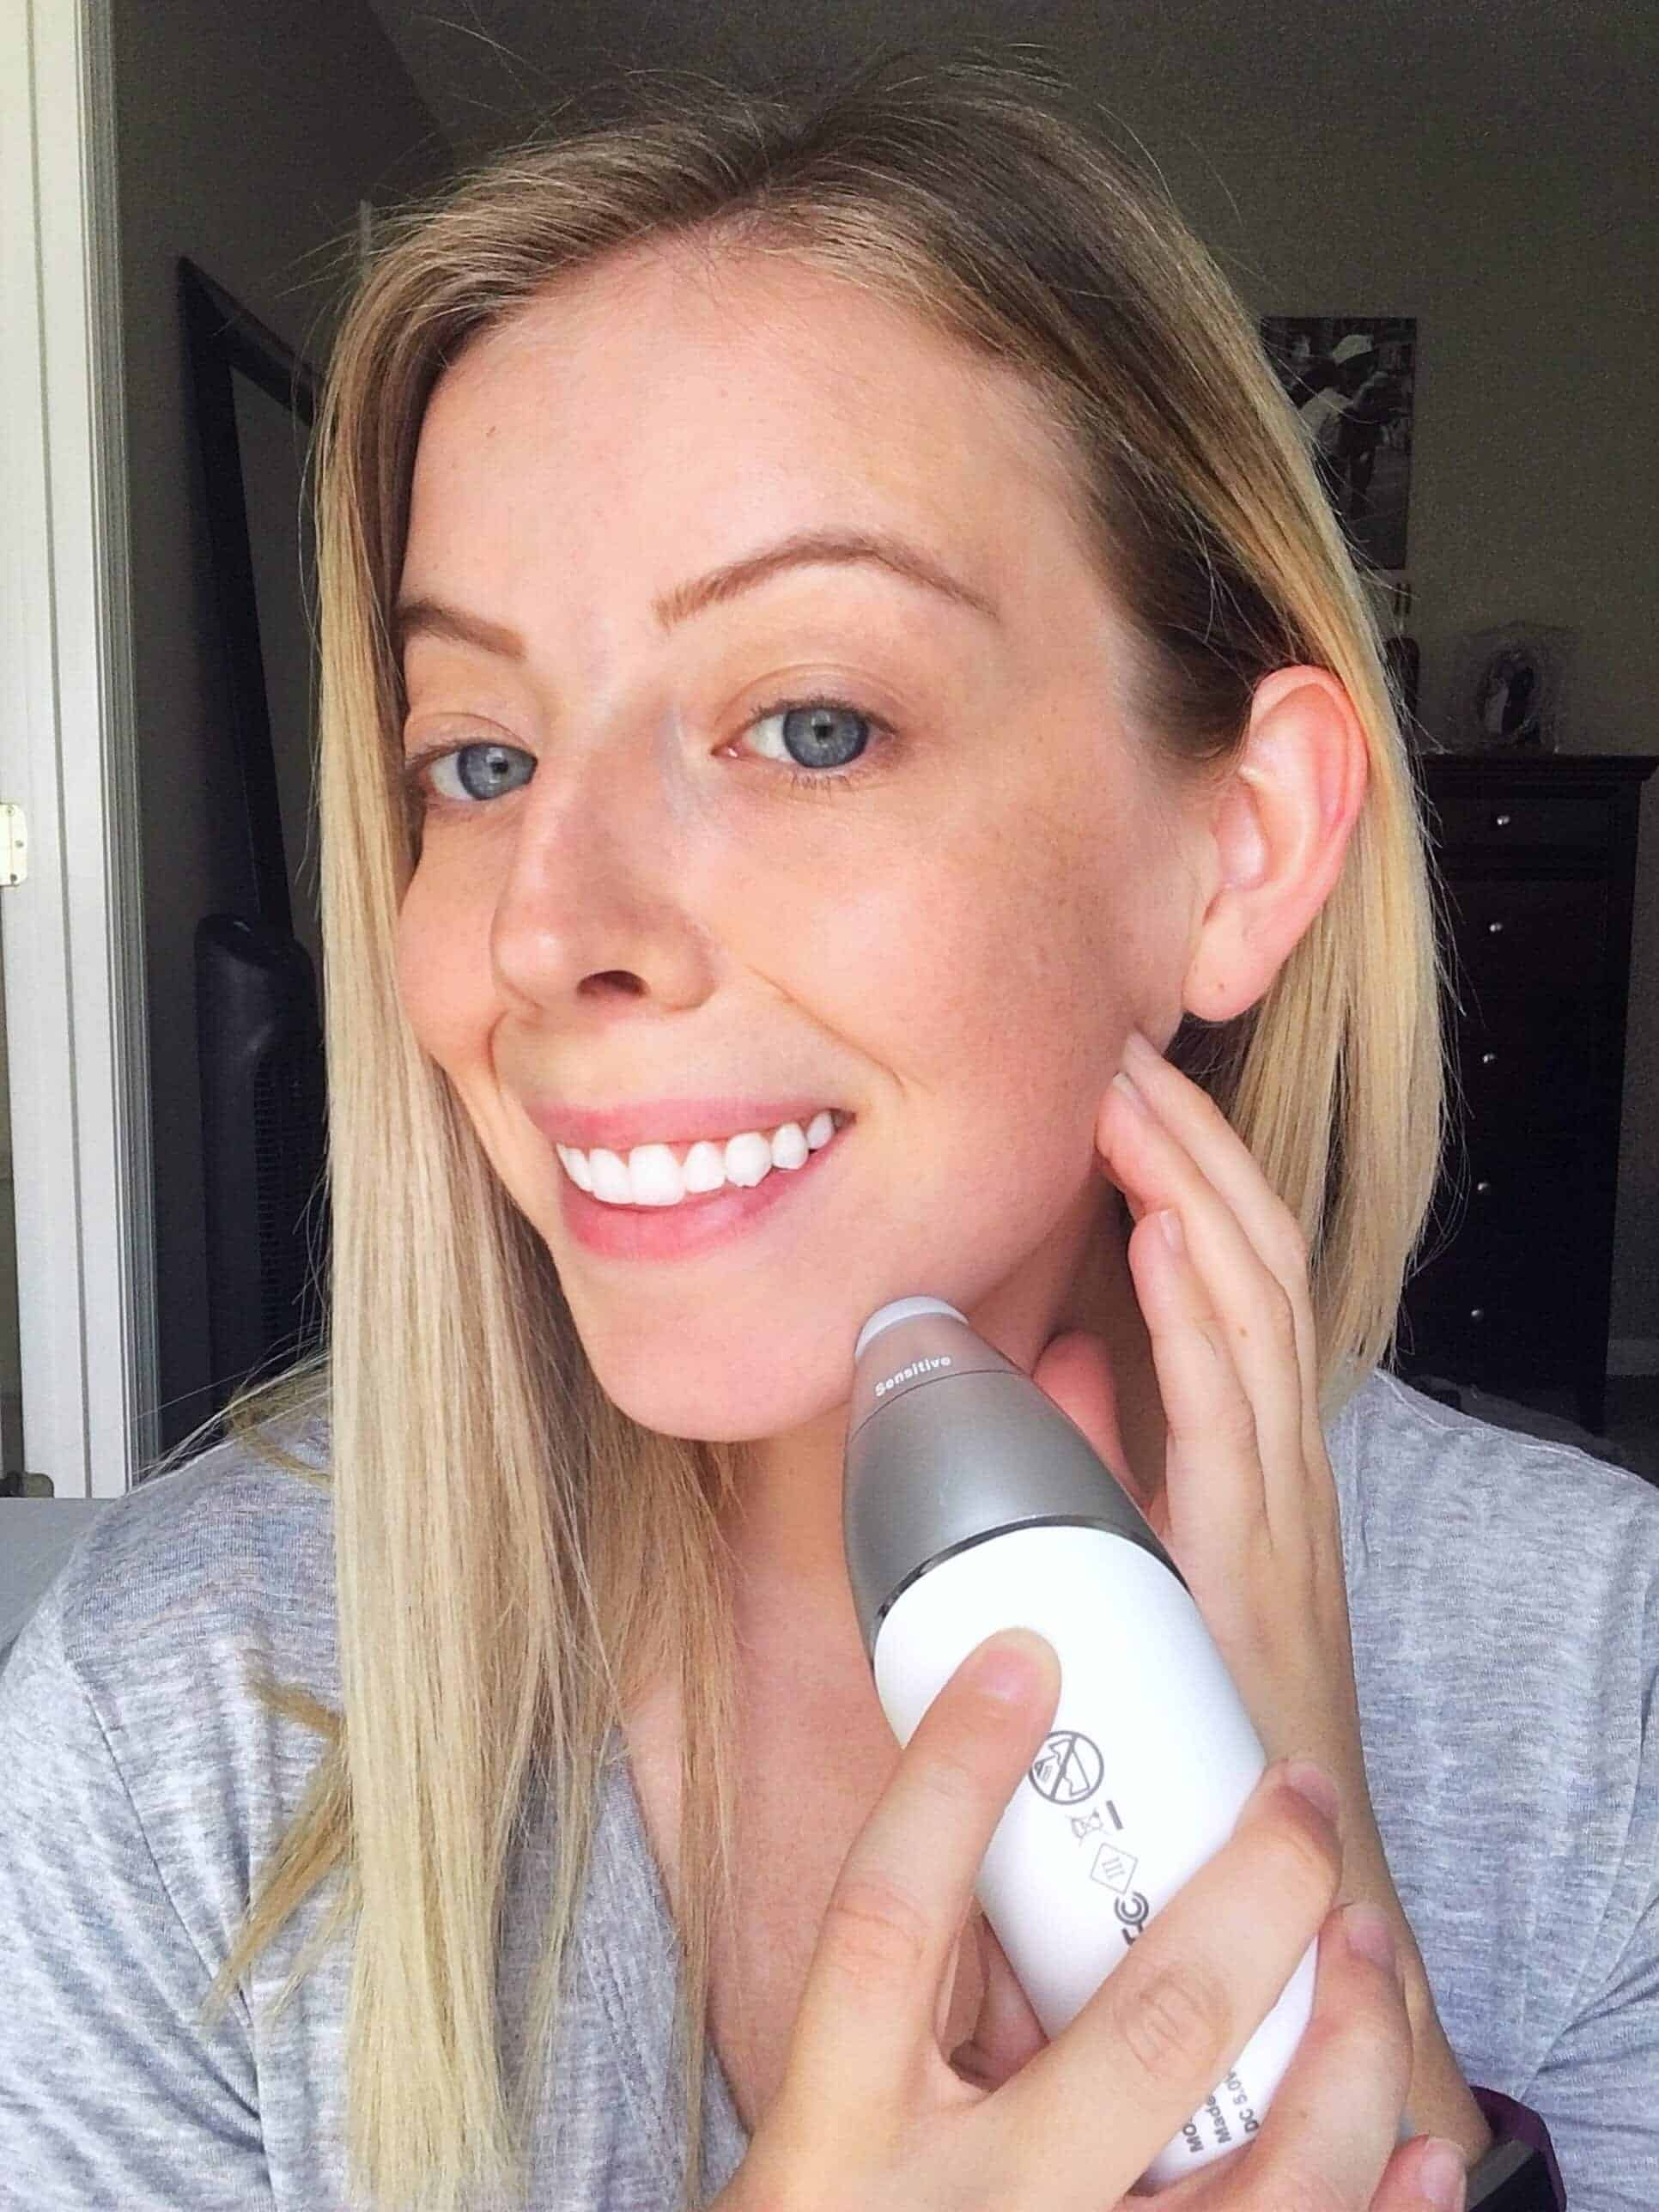 Curious about the skincare benefits of at home microdermabrasion? Check out my post on what microdermabrasion is, how to do easy, at home microdermabrasion, and the best microdermabrasion device to use. #skincare #microdermabrasion #skincaretips #skincaretutorial